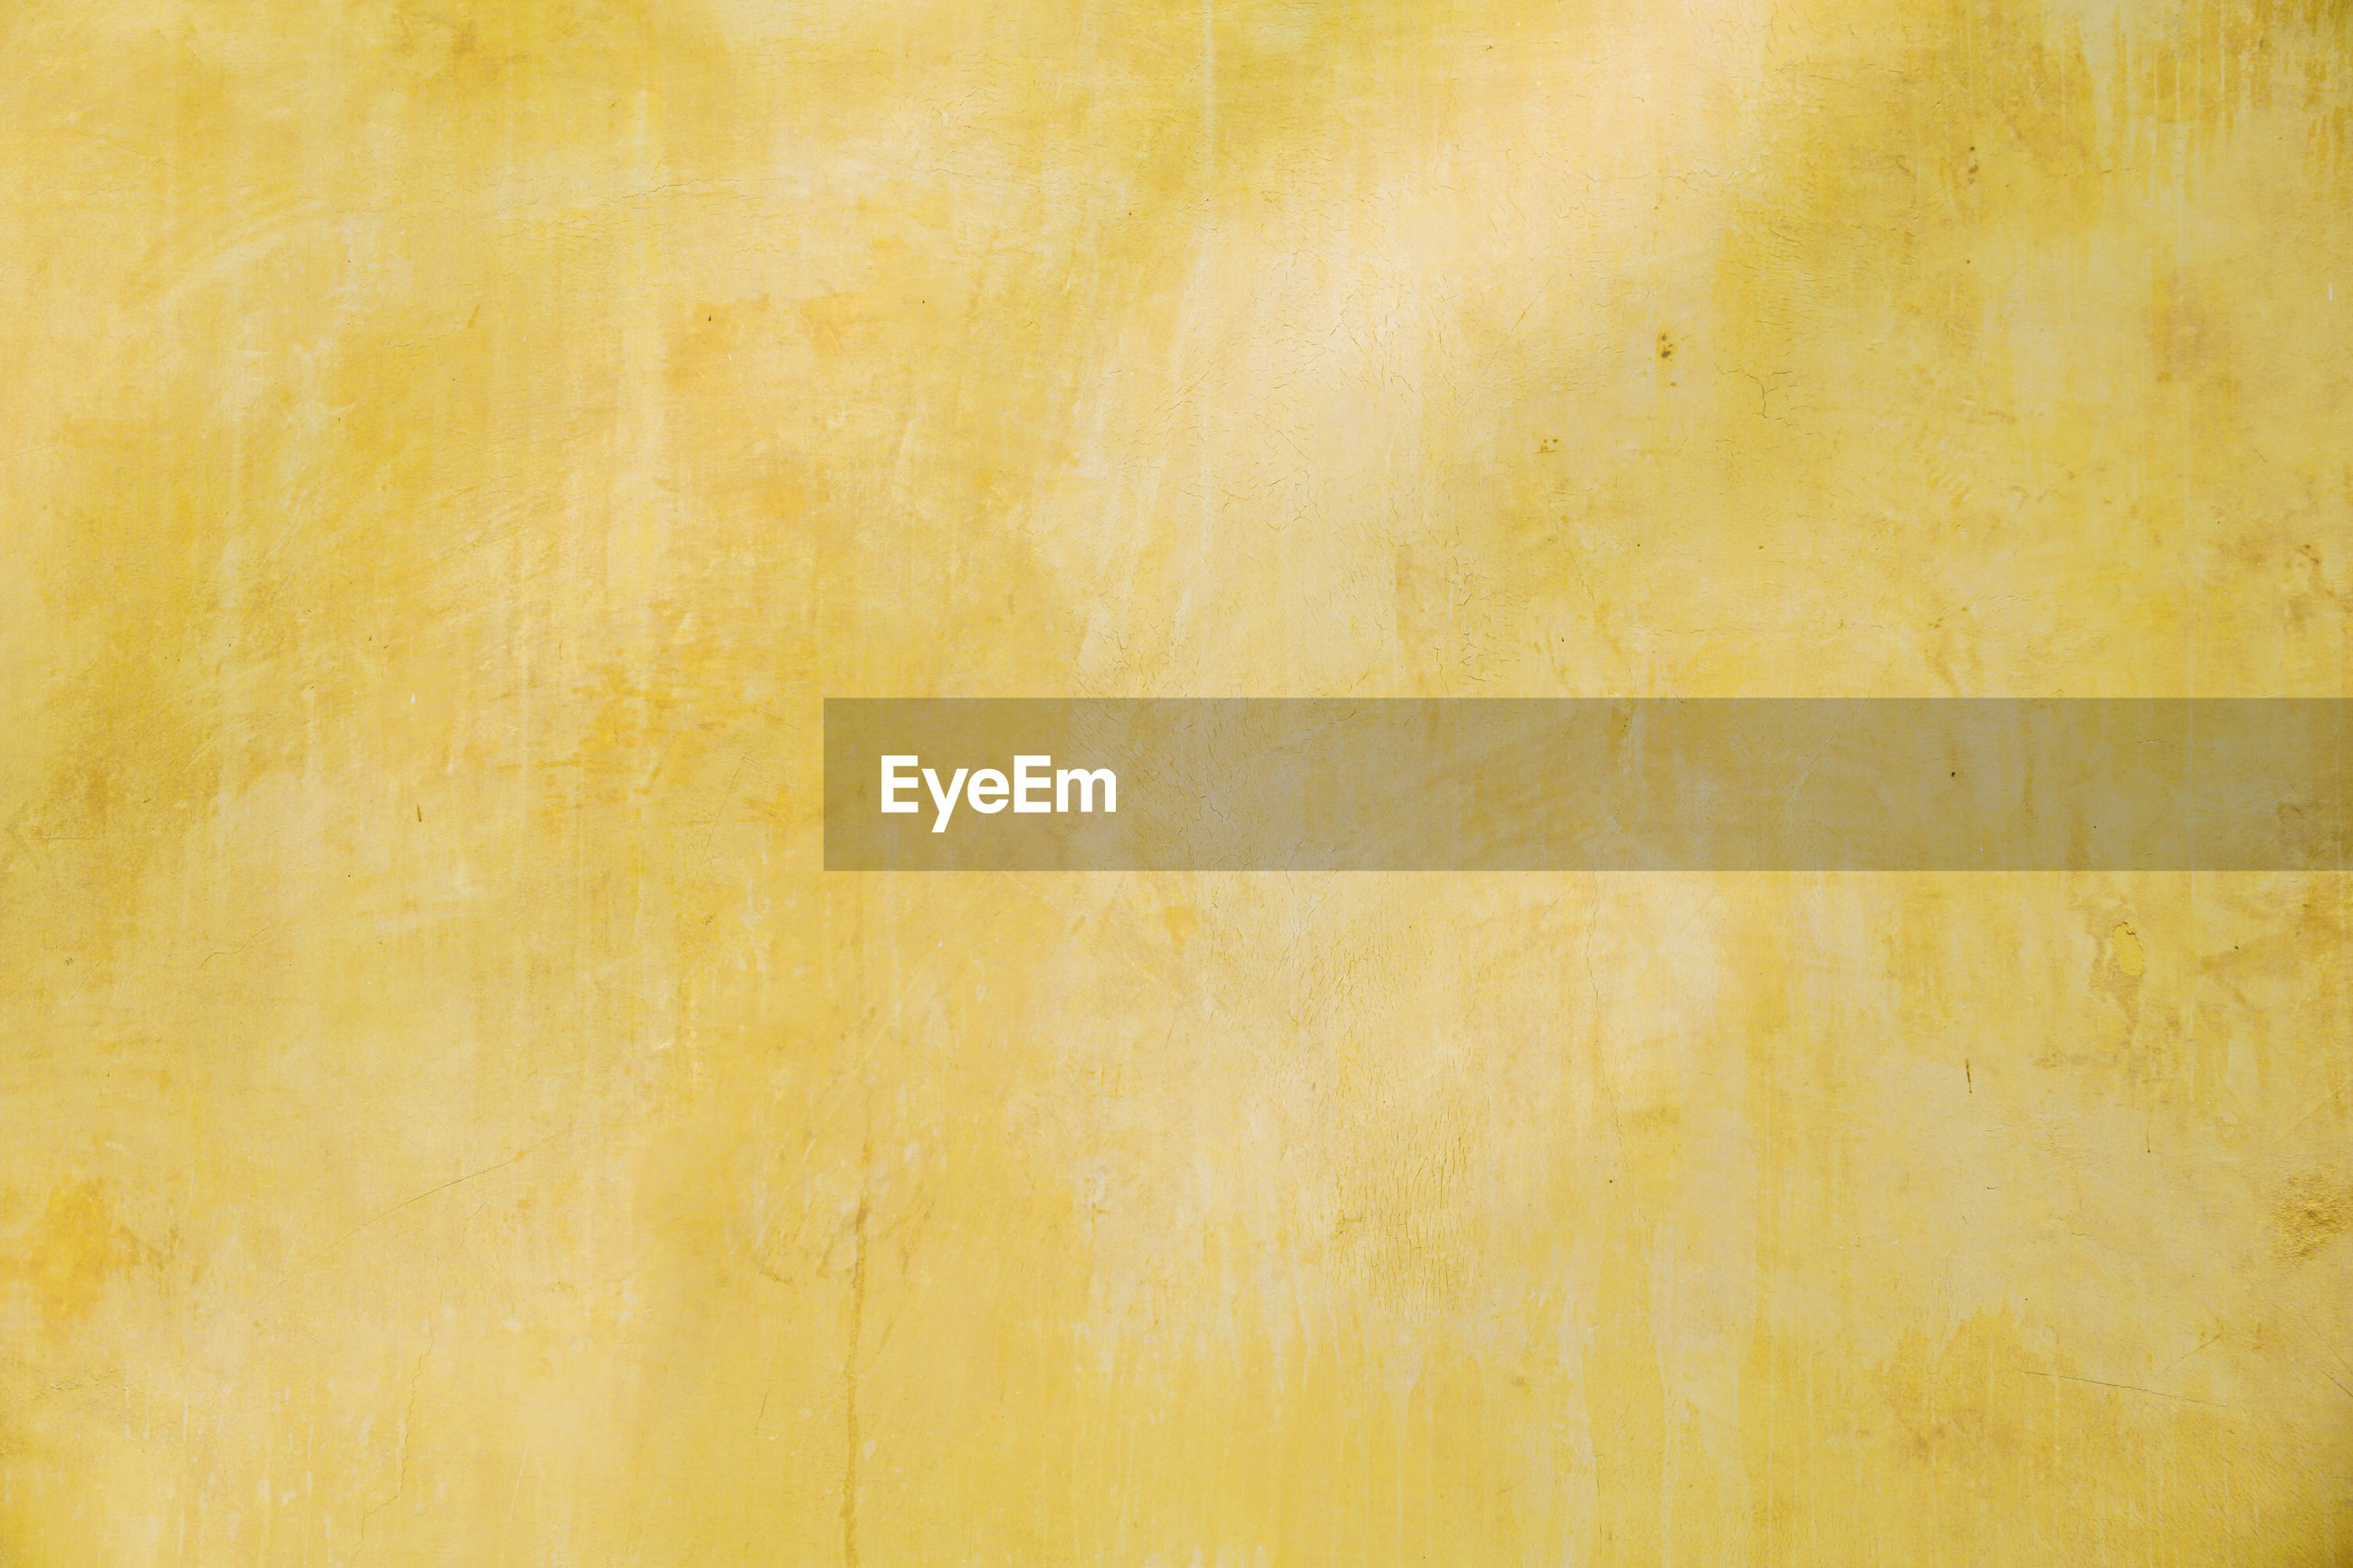 Concrete wall texture background, yellow painted